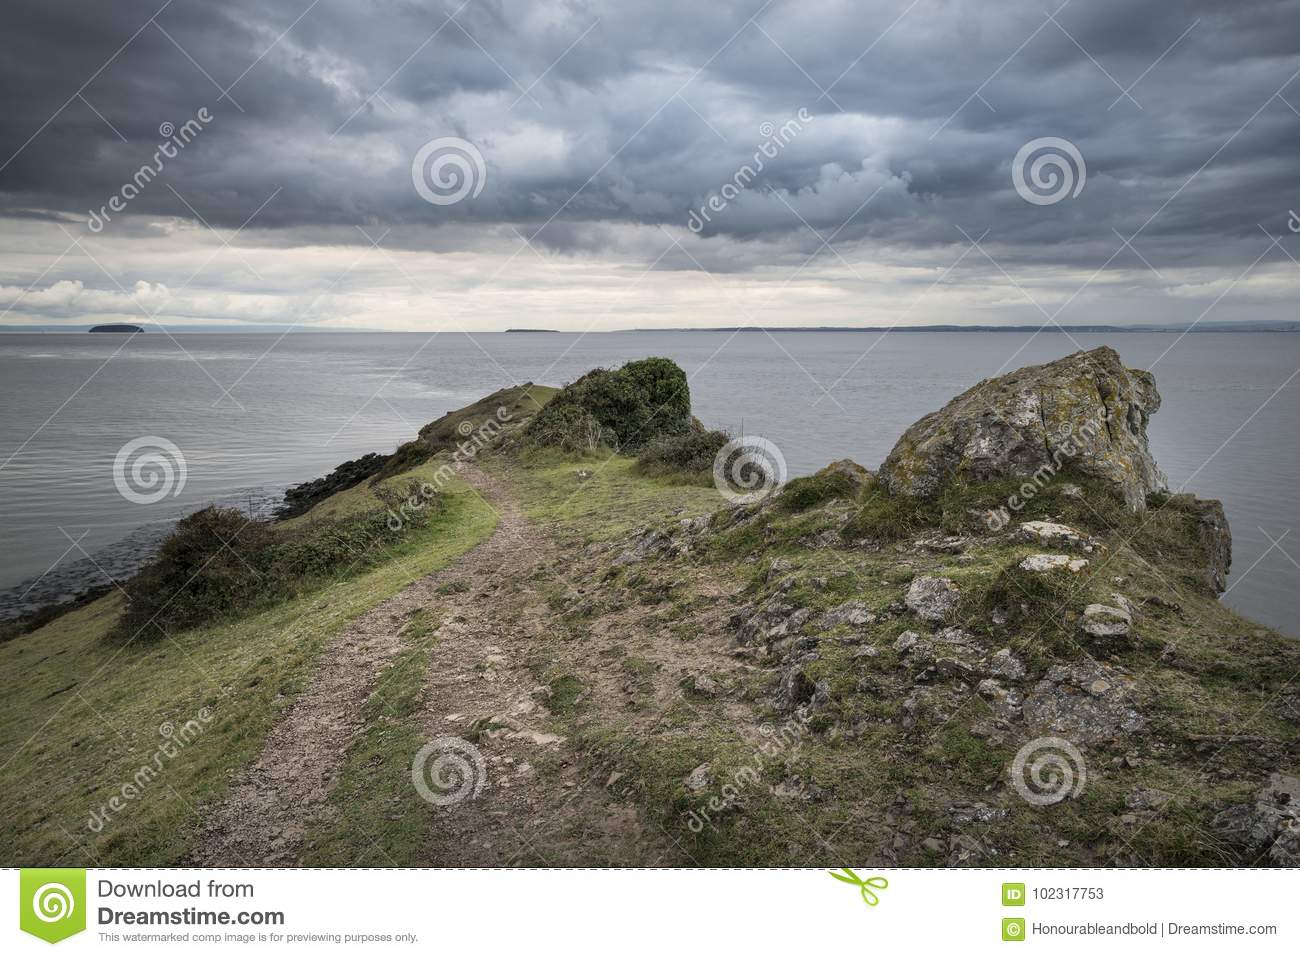 Landscape image looking out to sea with stormy sky